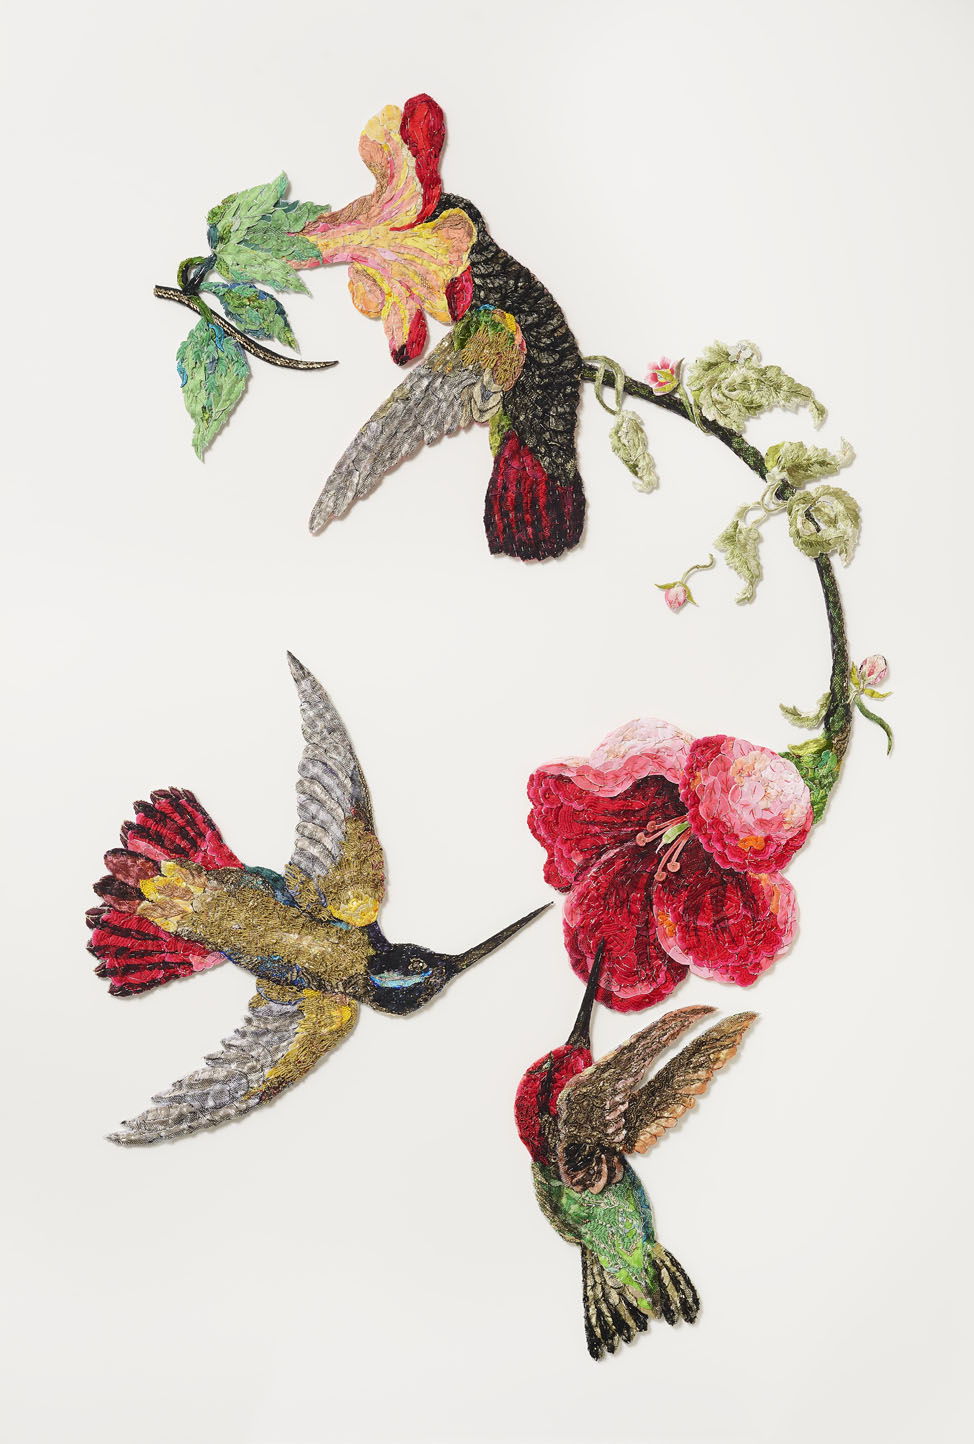 Sky Jewels 2016 after John James Audubon 1833